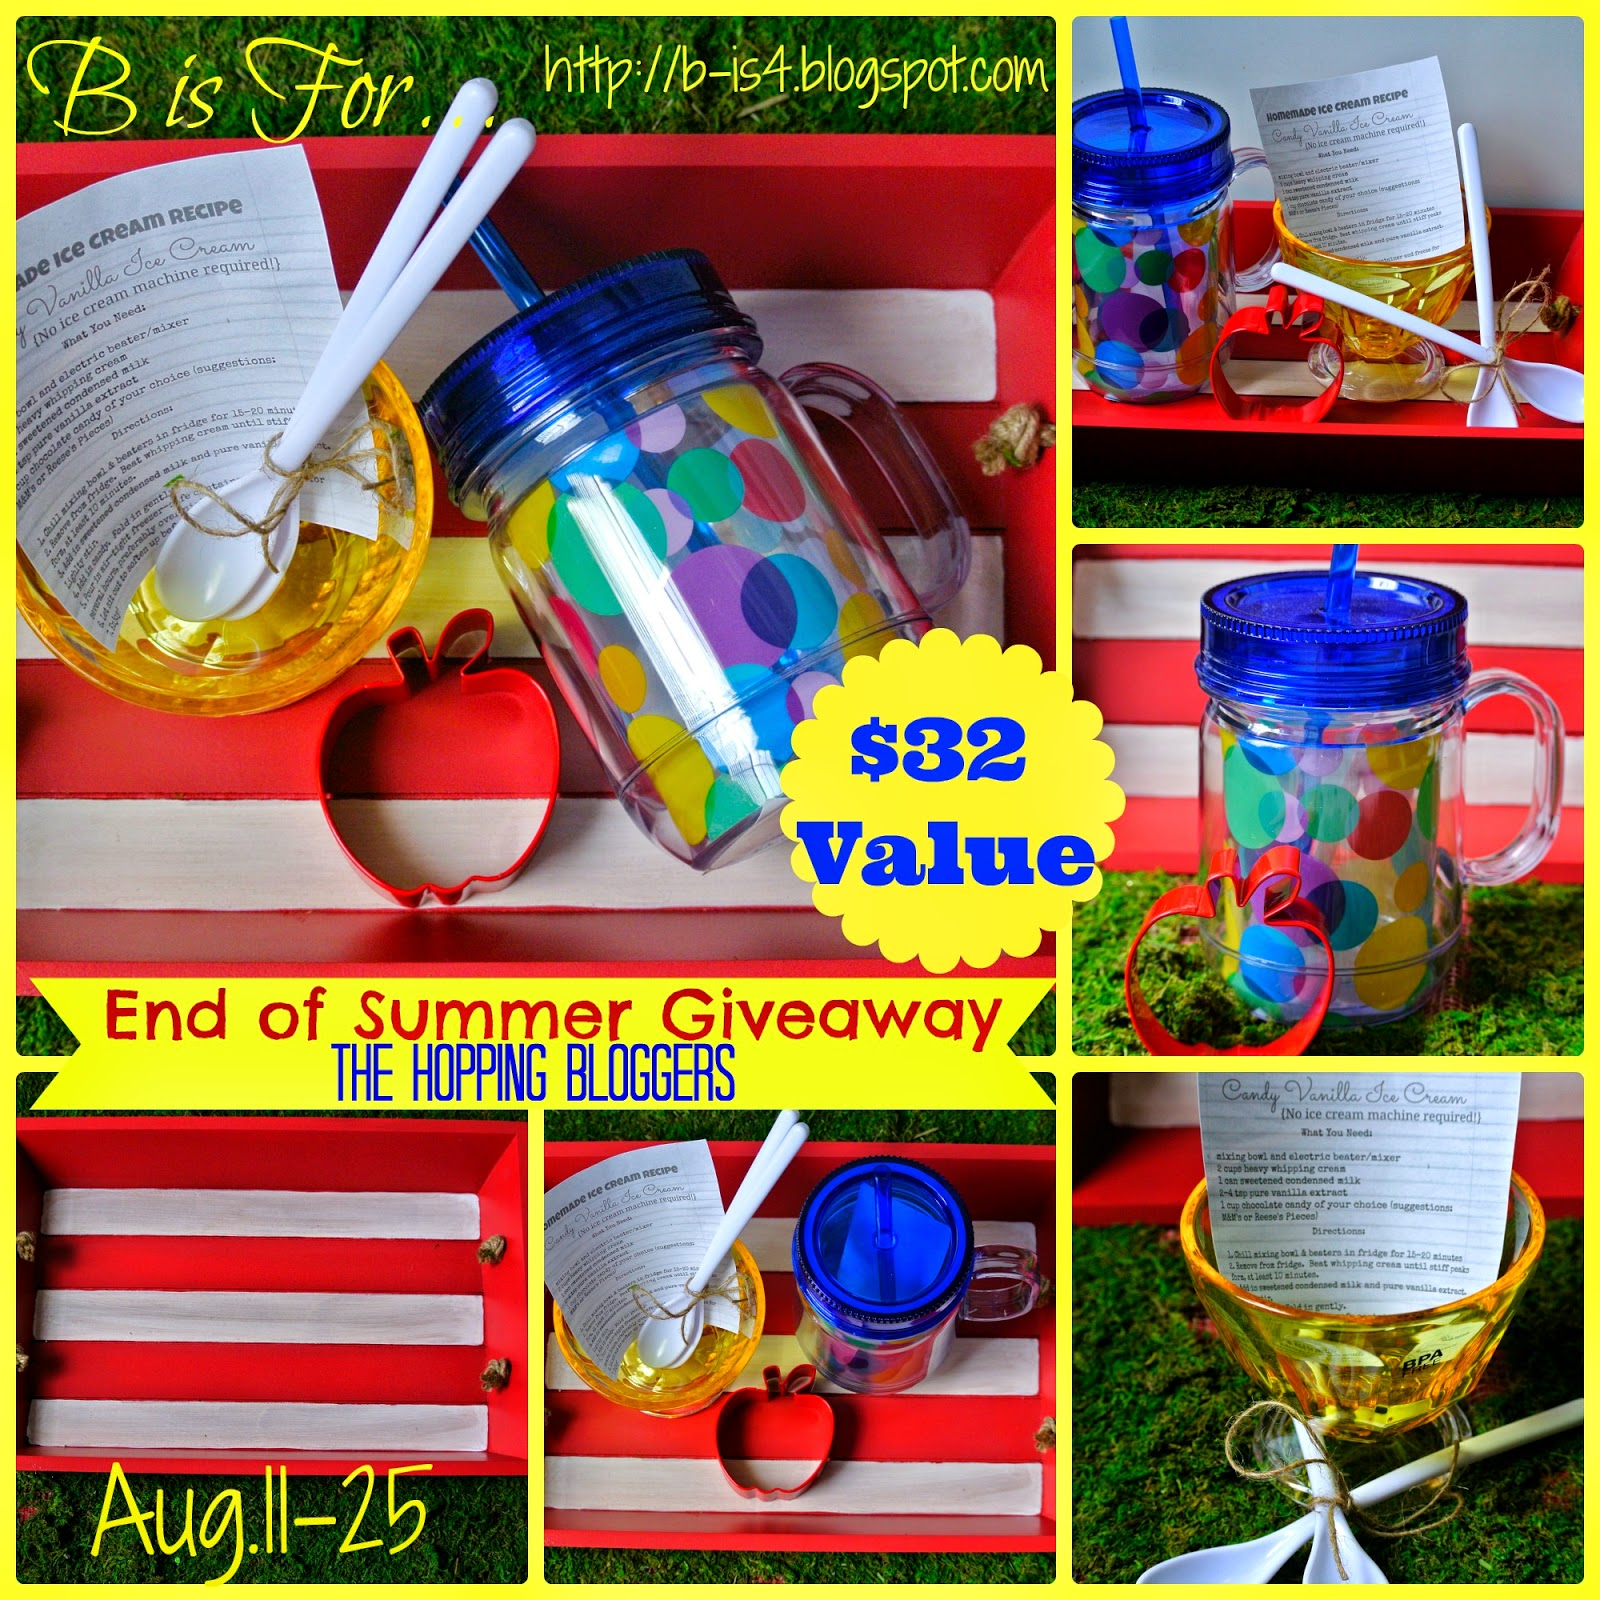 http://b-is4.blogspot.com/2014/08/backyard-summer-kit-end-of-summer.html